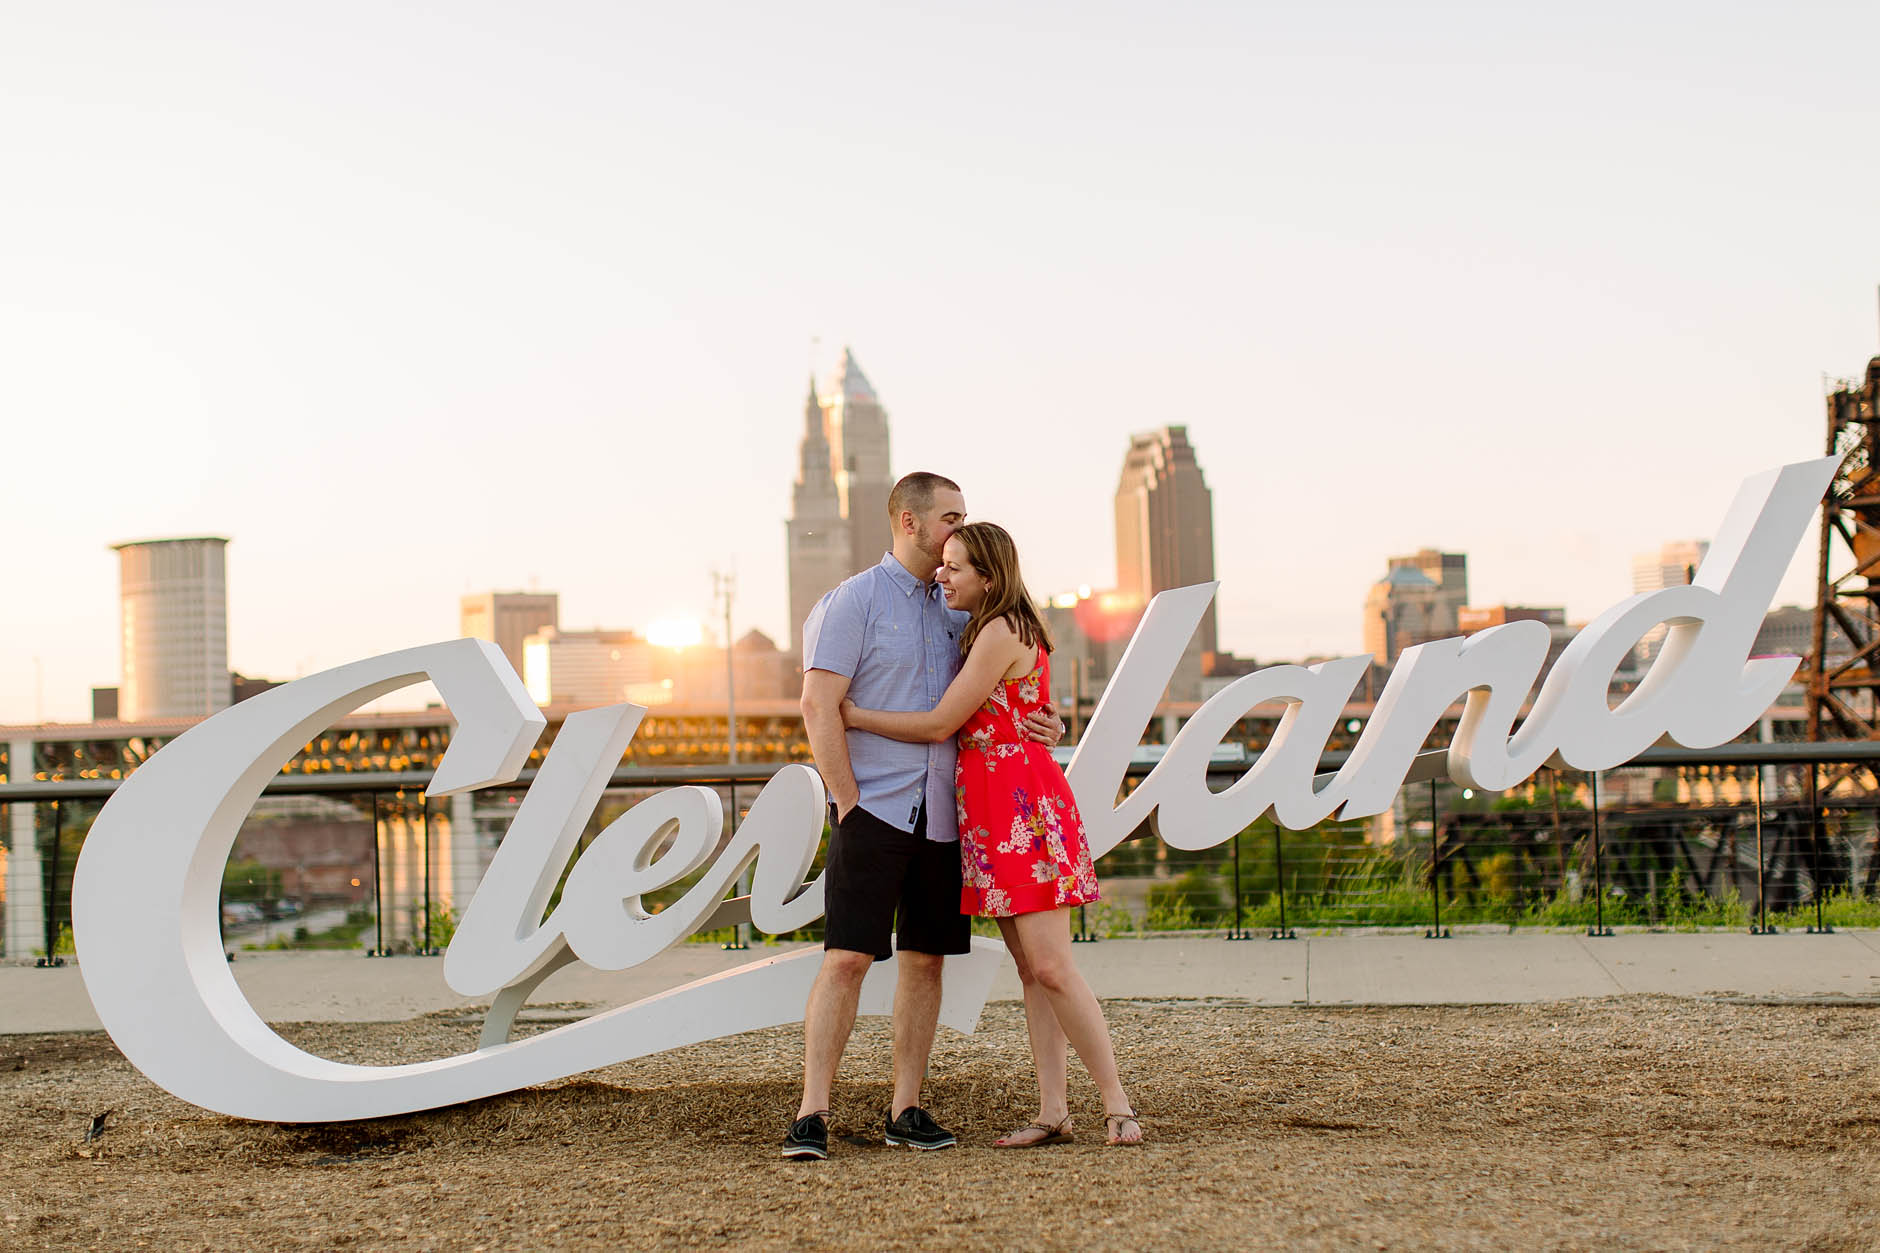 Cleveland engagement session with Merissa & Zack.